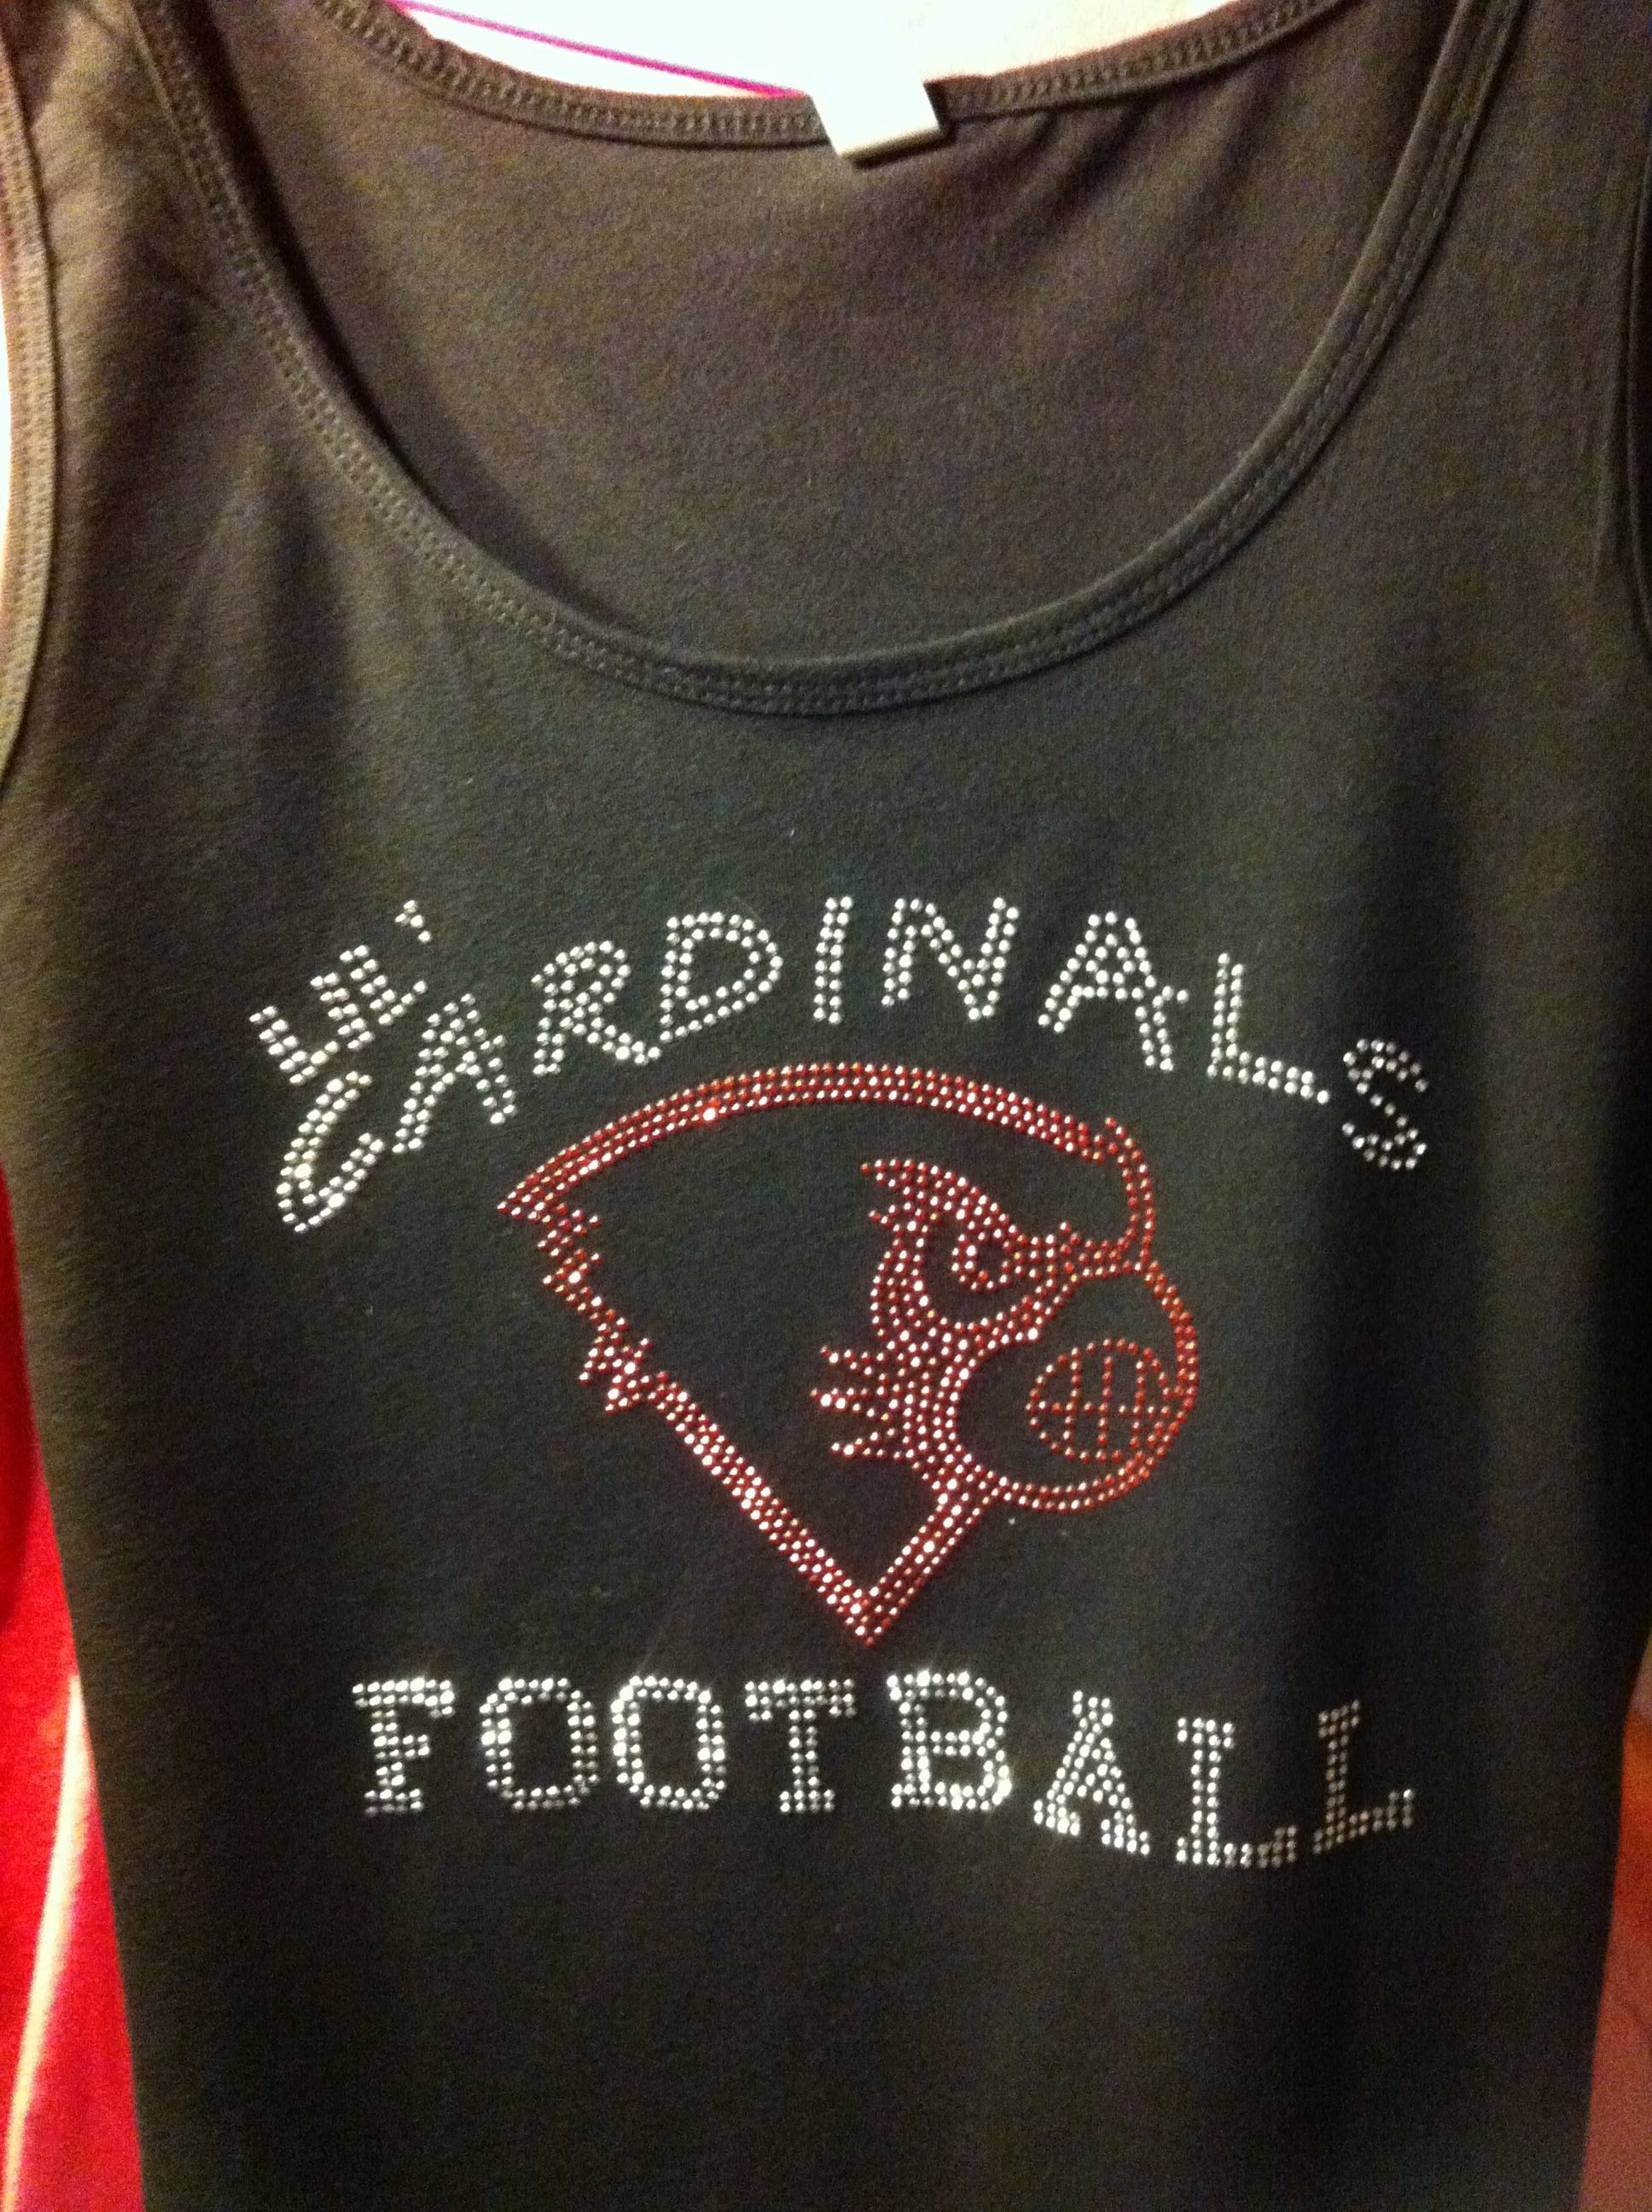 Rhinestud Fan Gear for your young athletes!